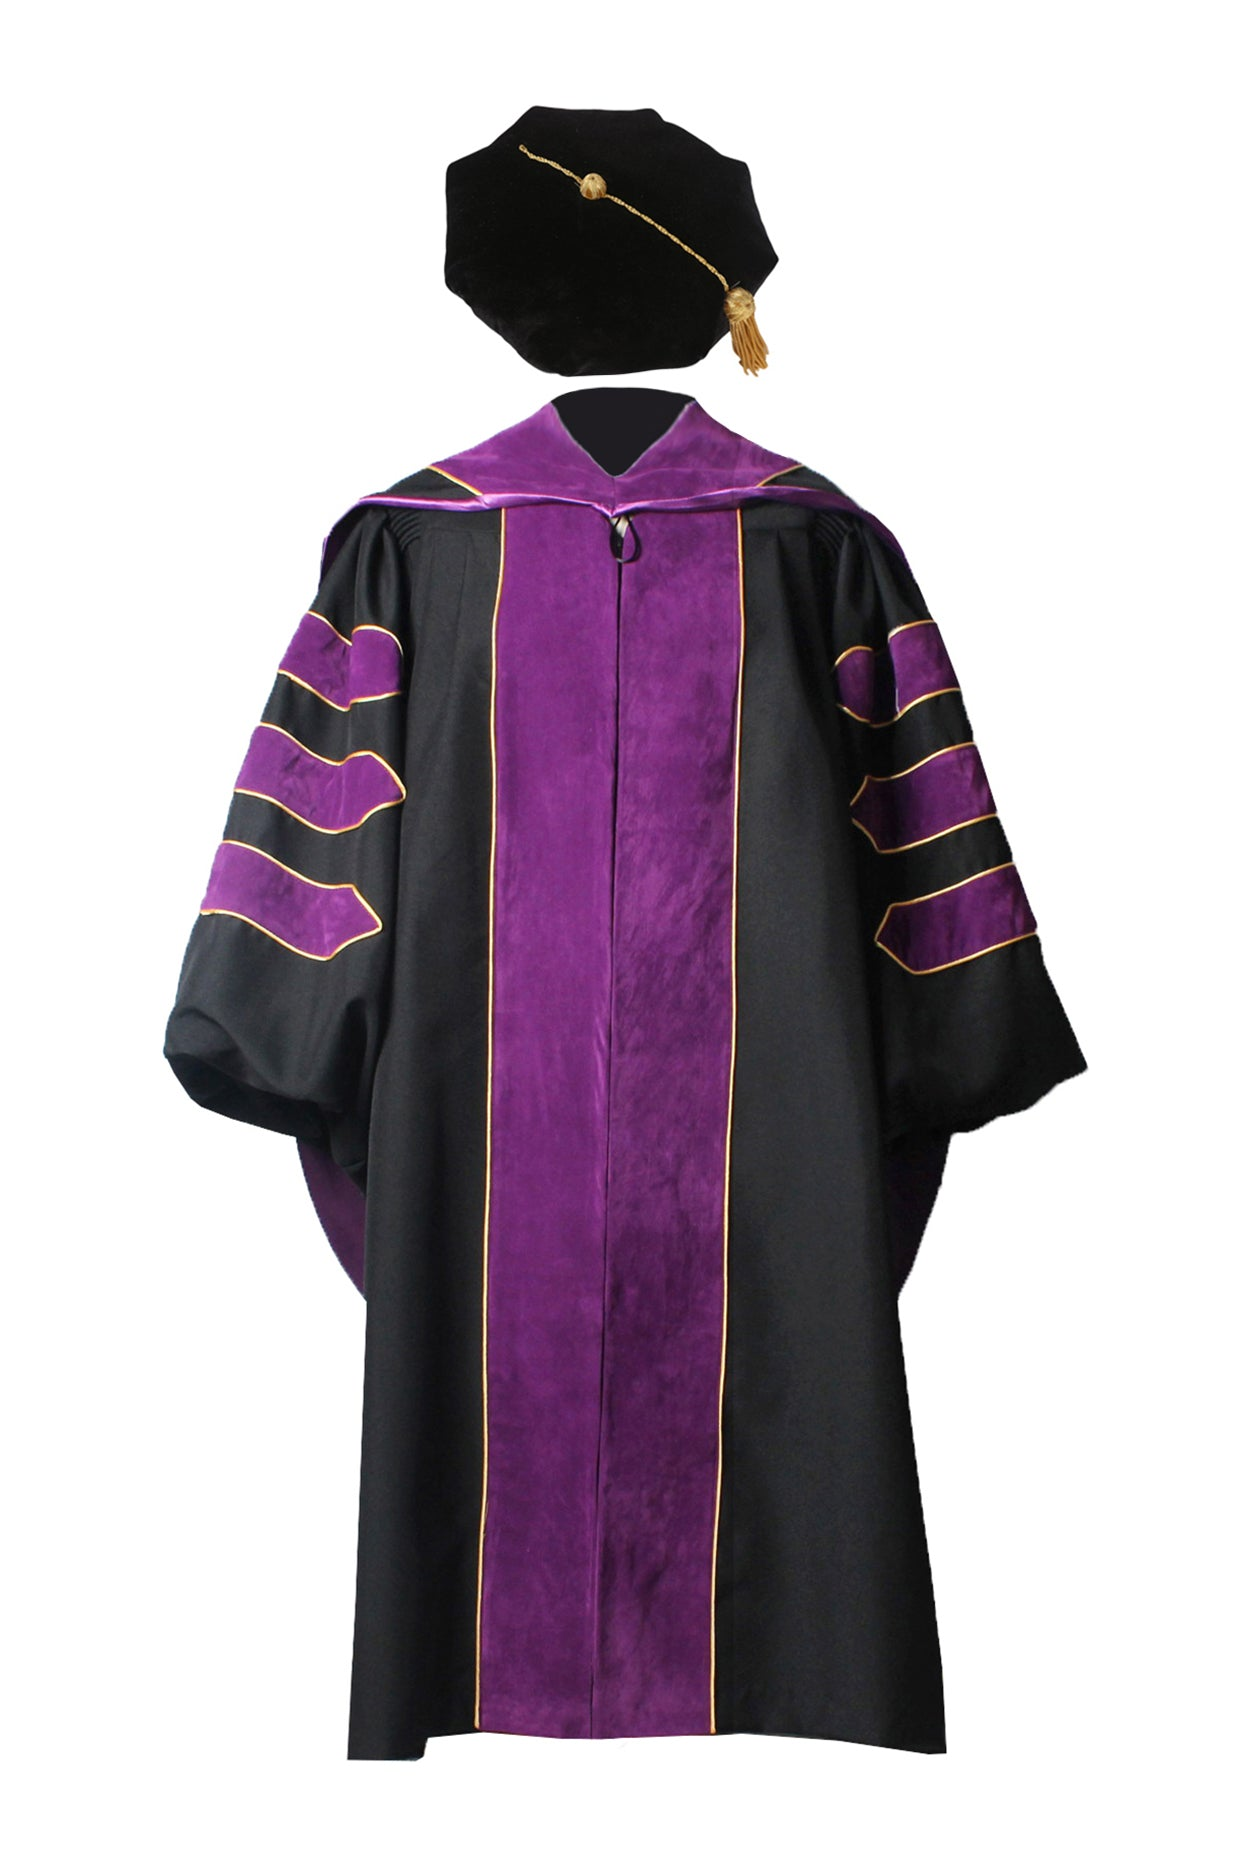 Deluxe Doctoral Graduation Gown,Phd Hood and 8-Side Tam Package Purple